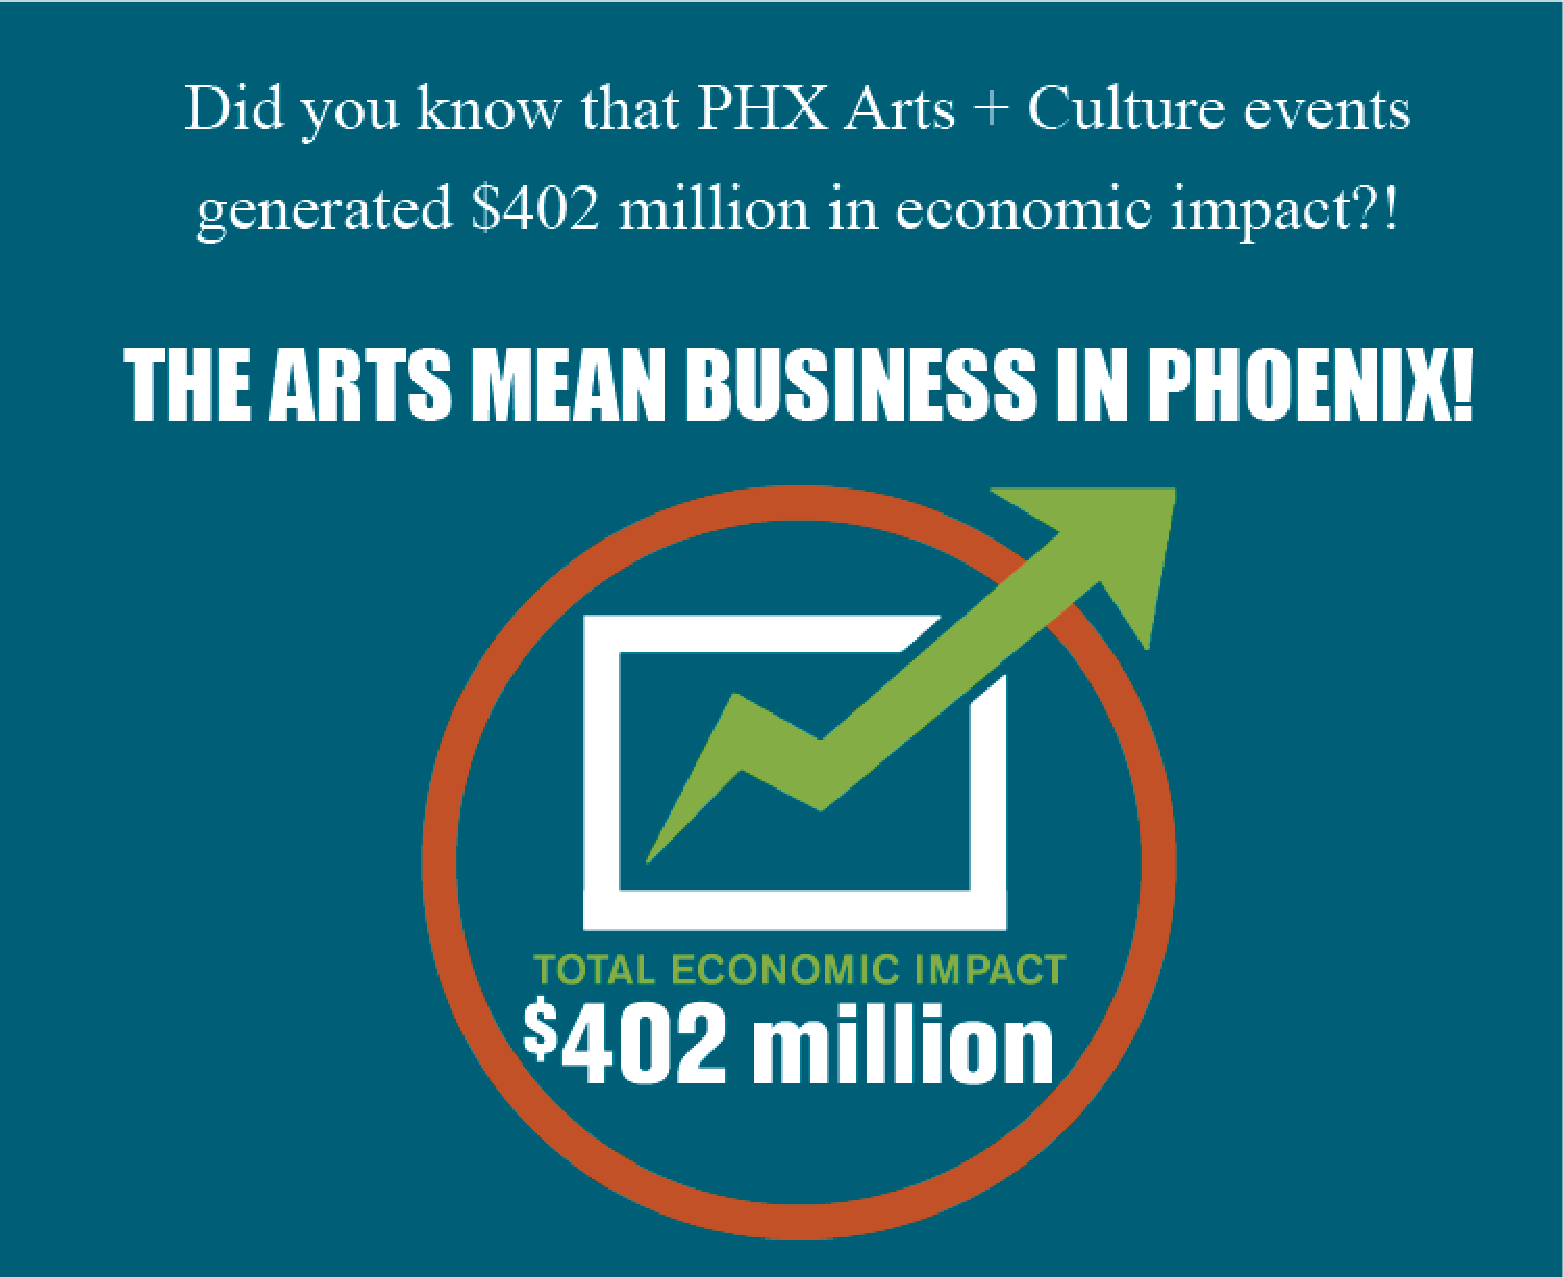 Did you know that Phoenix Arts and Culture events generated $402 Million in economic impact? The Arts Mean Business in Phoenix